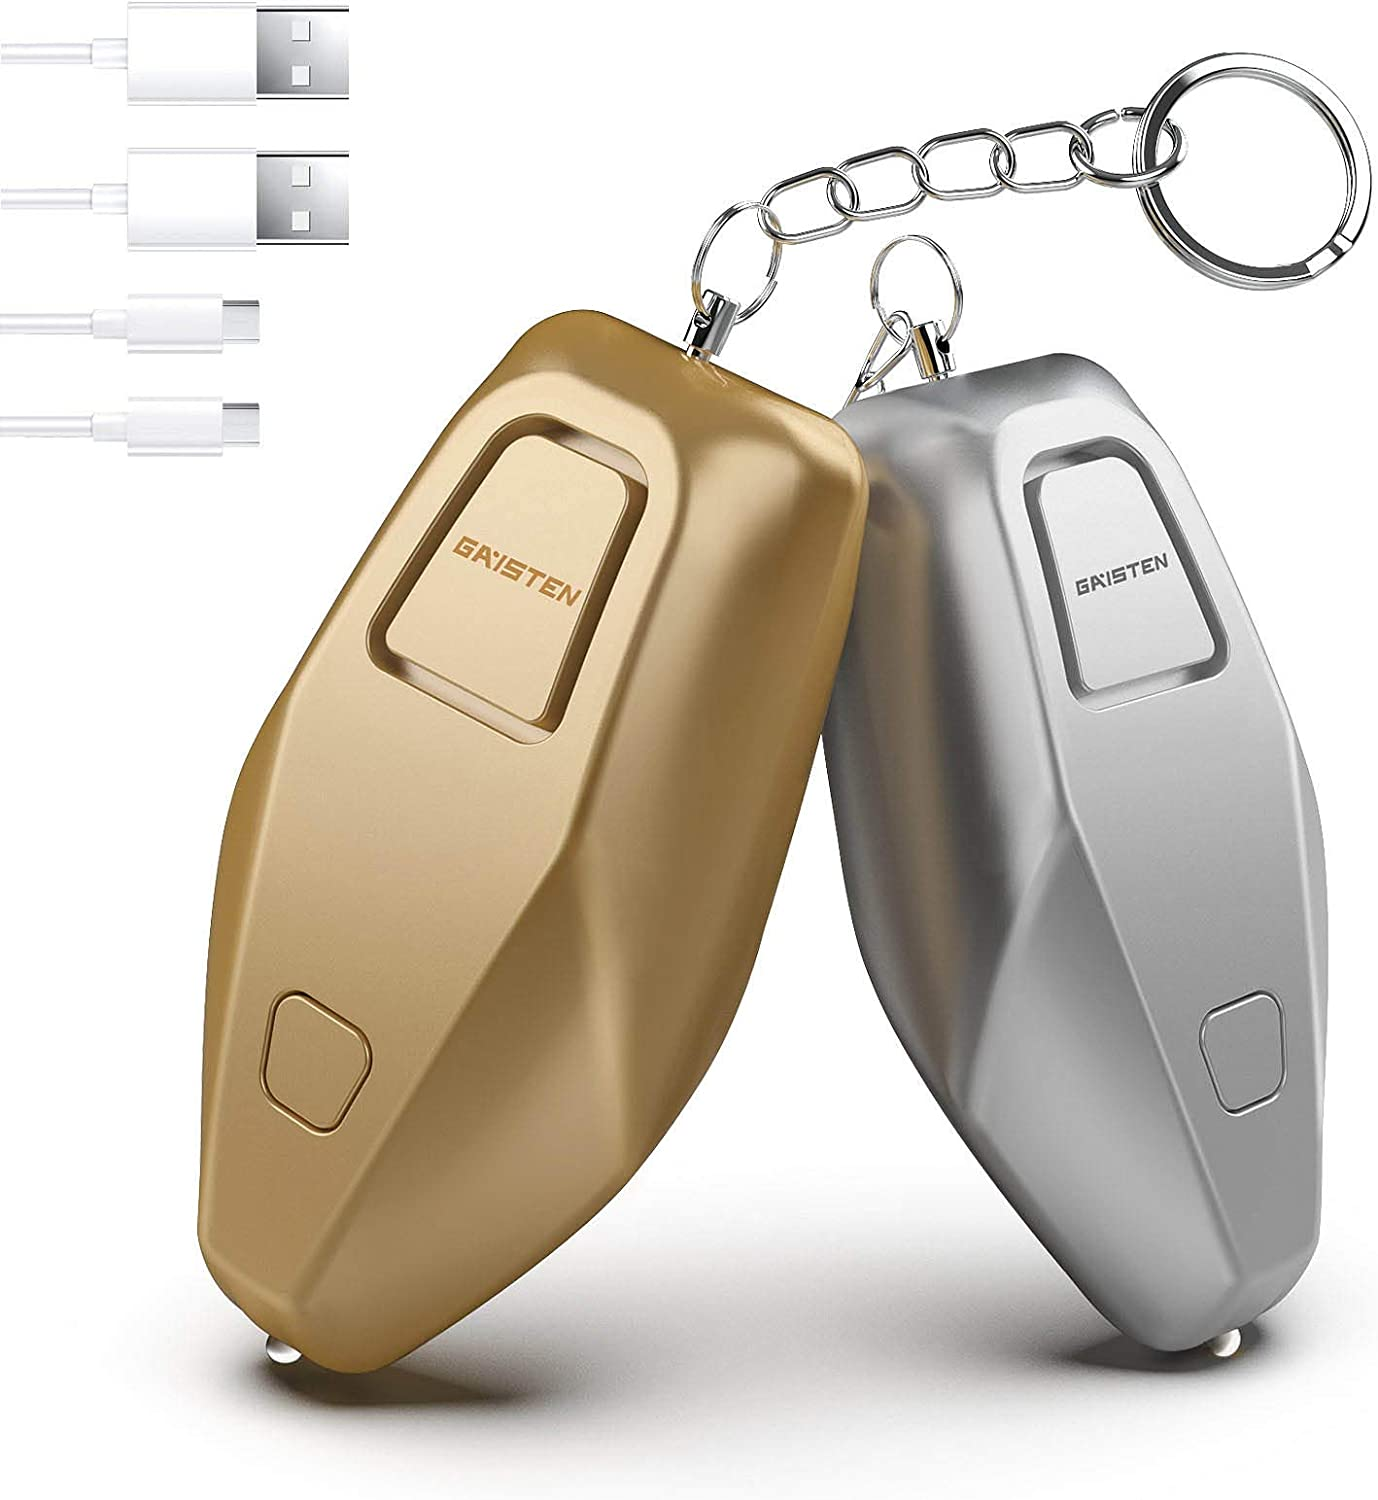 Upgraded Personal Alarm 140dB, Safety Alarm Keychain USB Rechargeable, Safe Sound Alarm with Steady LED Light, Pull Pin, Emergency Safe Alarm for Women, Kids, Elderly, Seniors, Runners 2 Packs